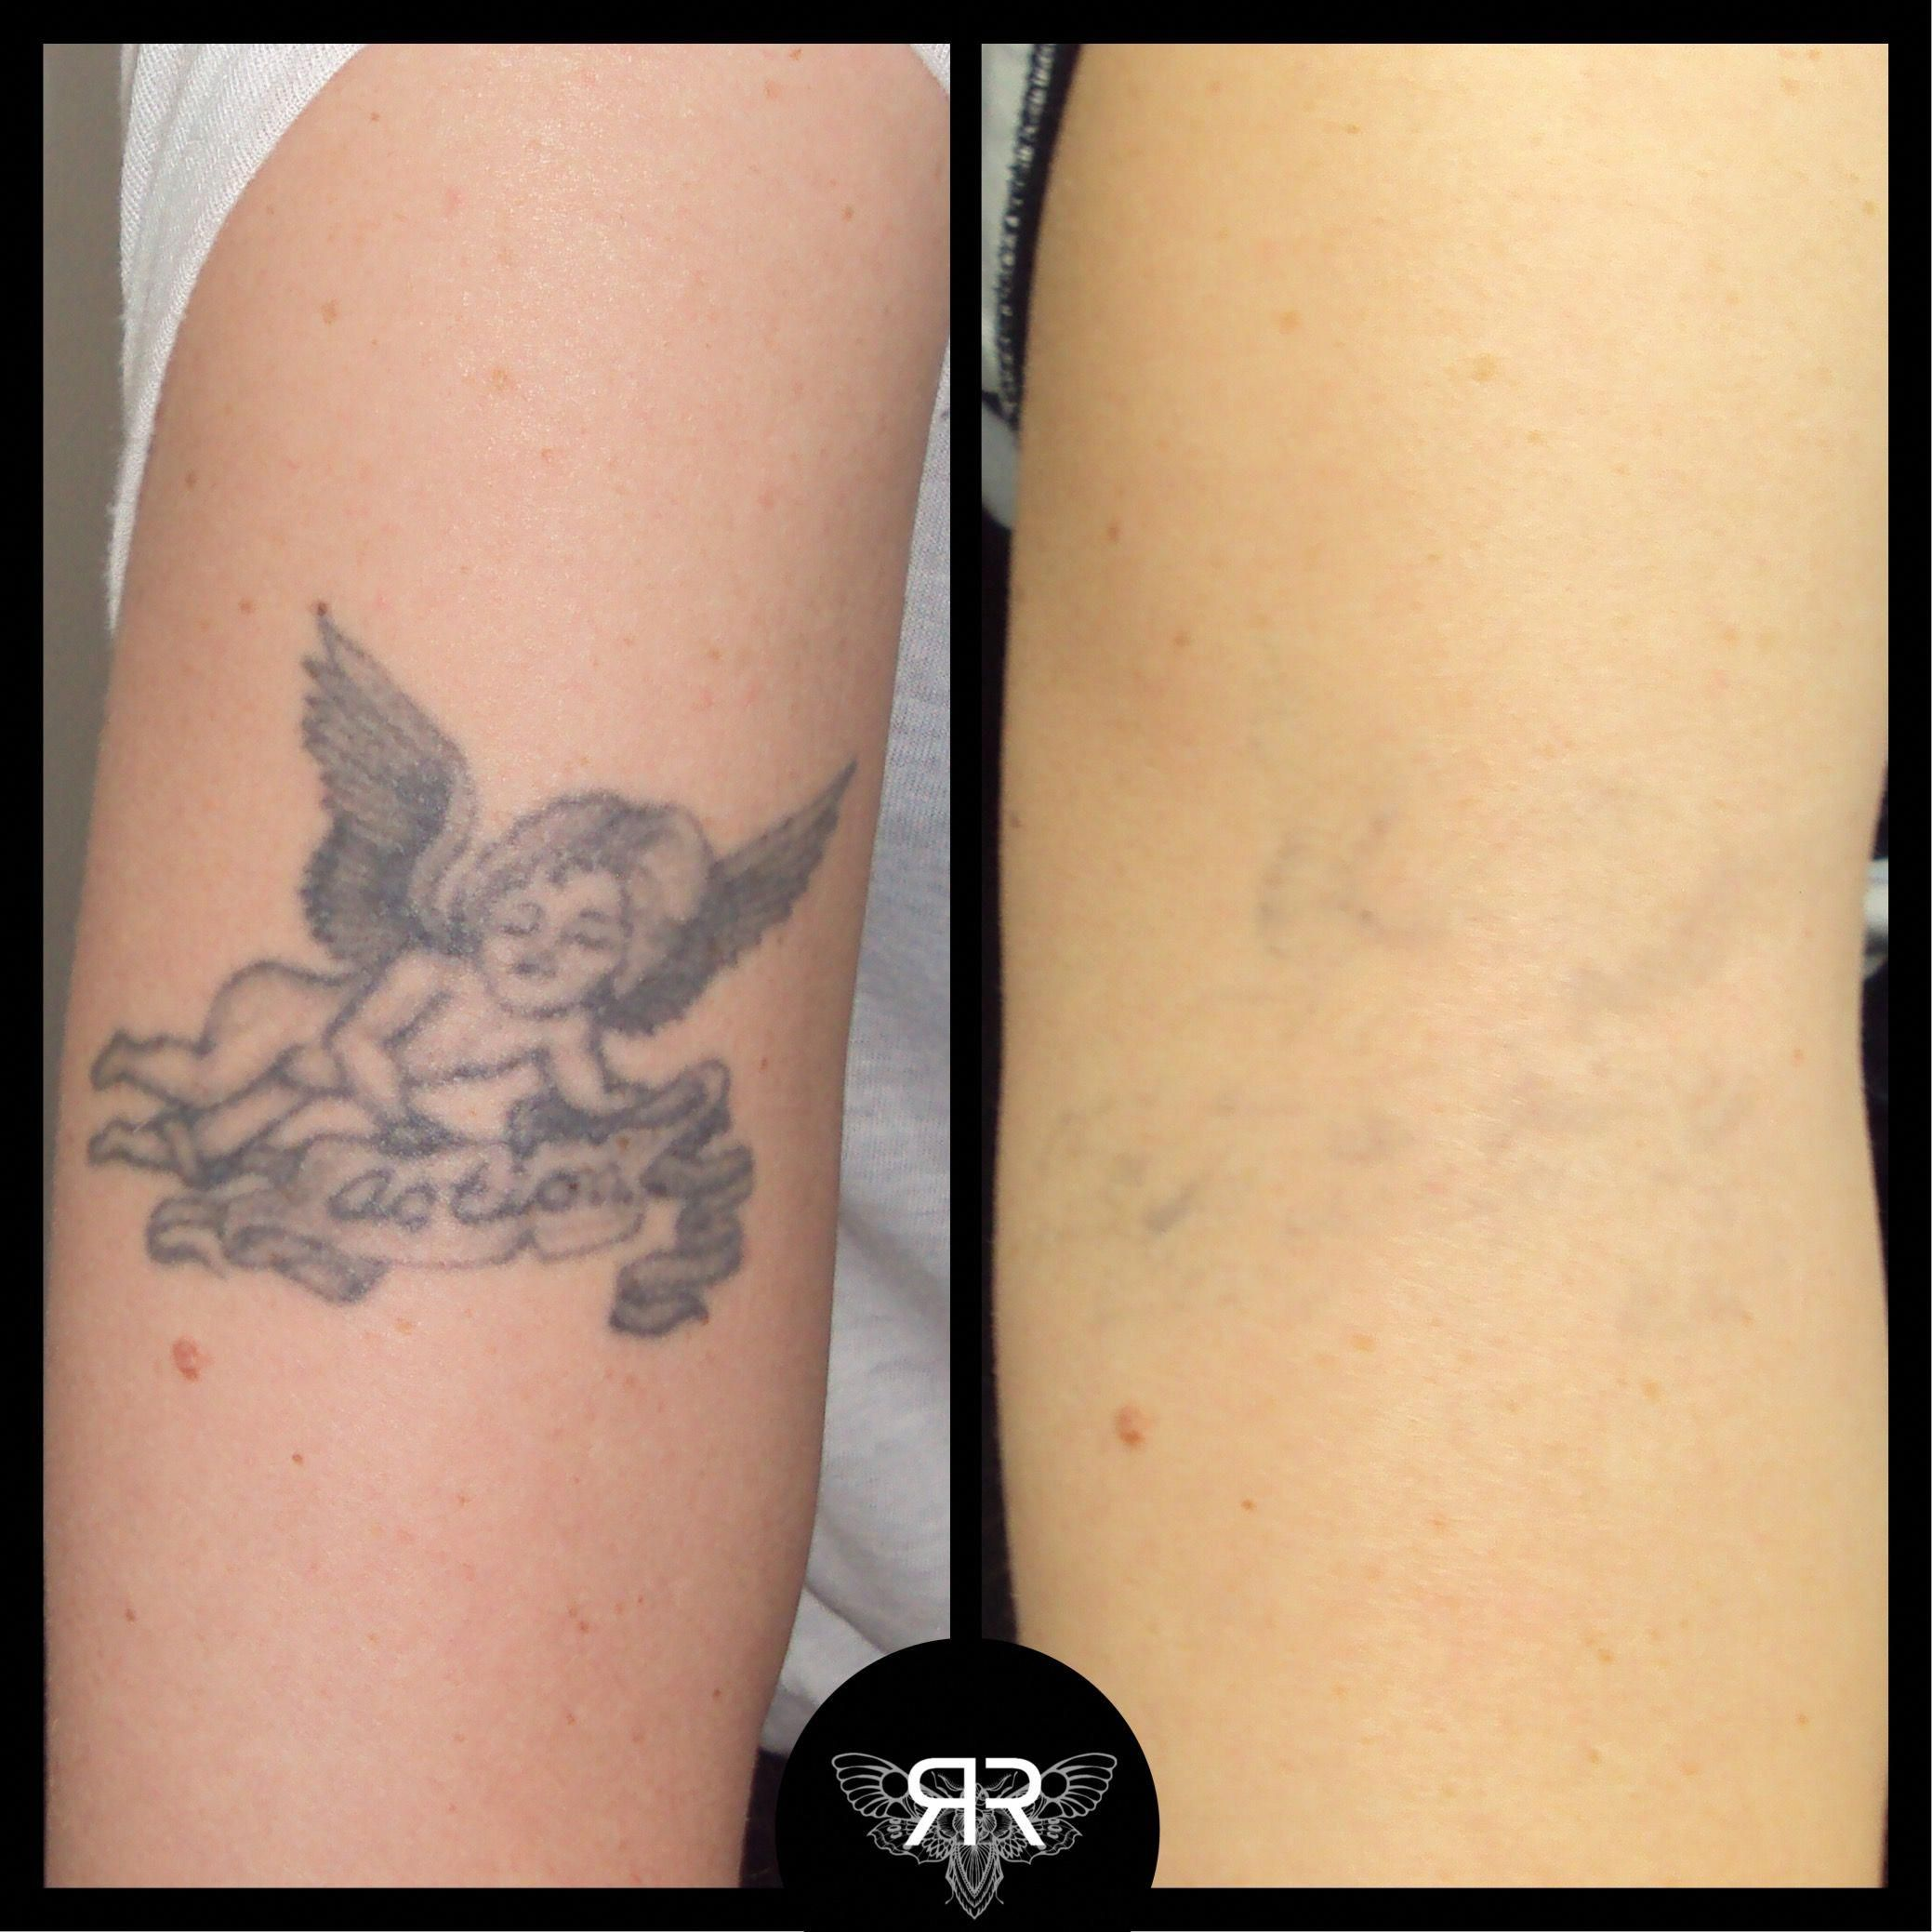 x5 PicoSure sessions tattooremovalpicosure